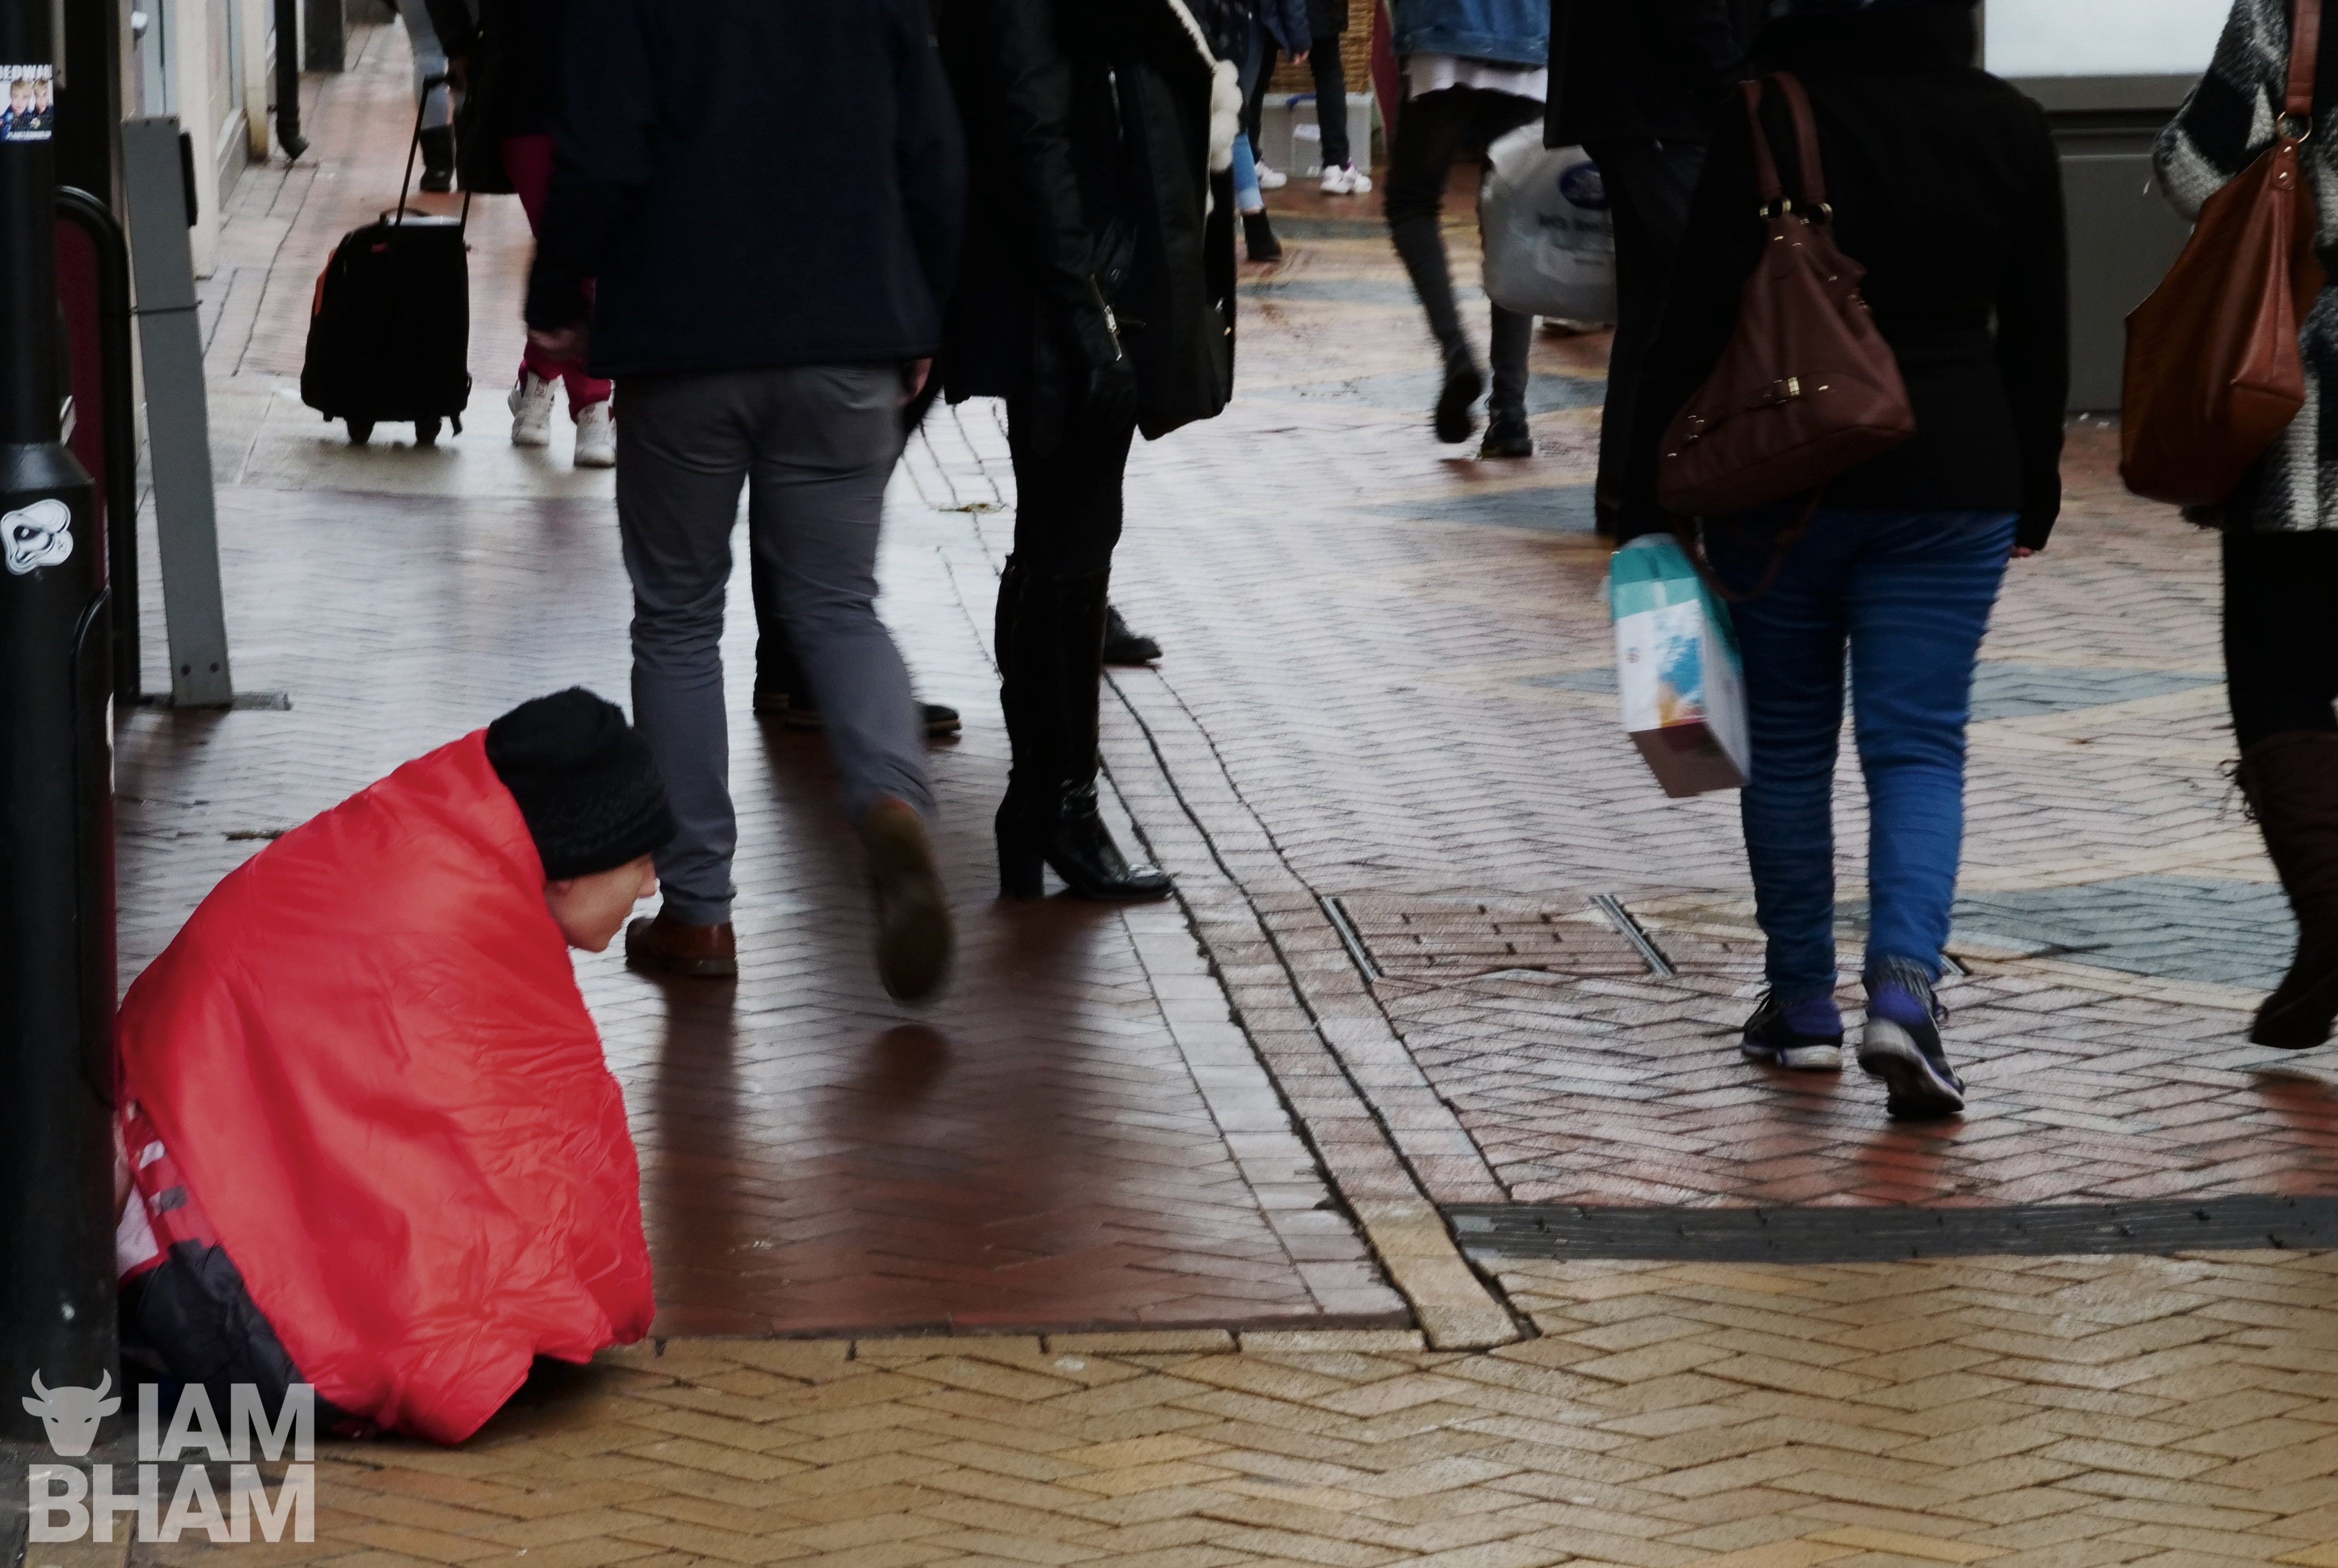 Birmingham Christmas Shelter provide a roof for rough sleepers during the Christmas period